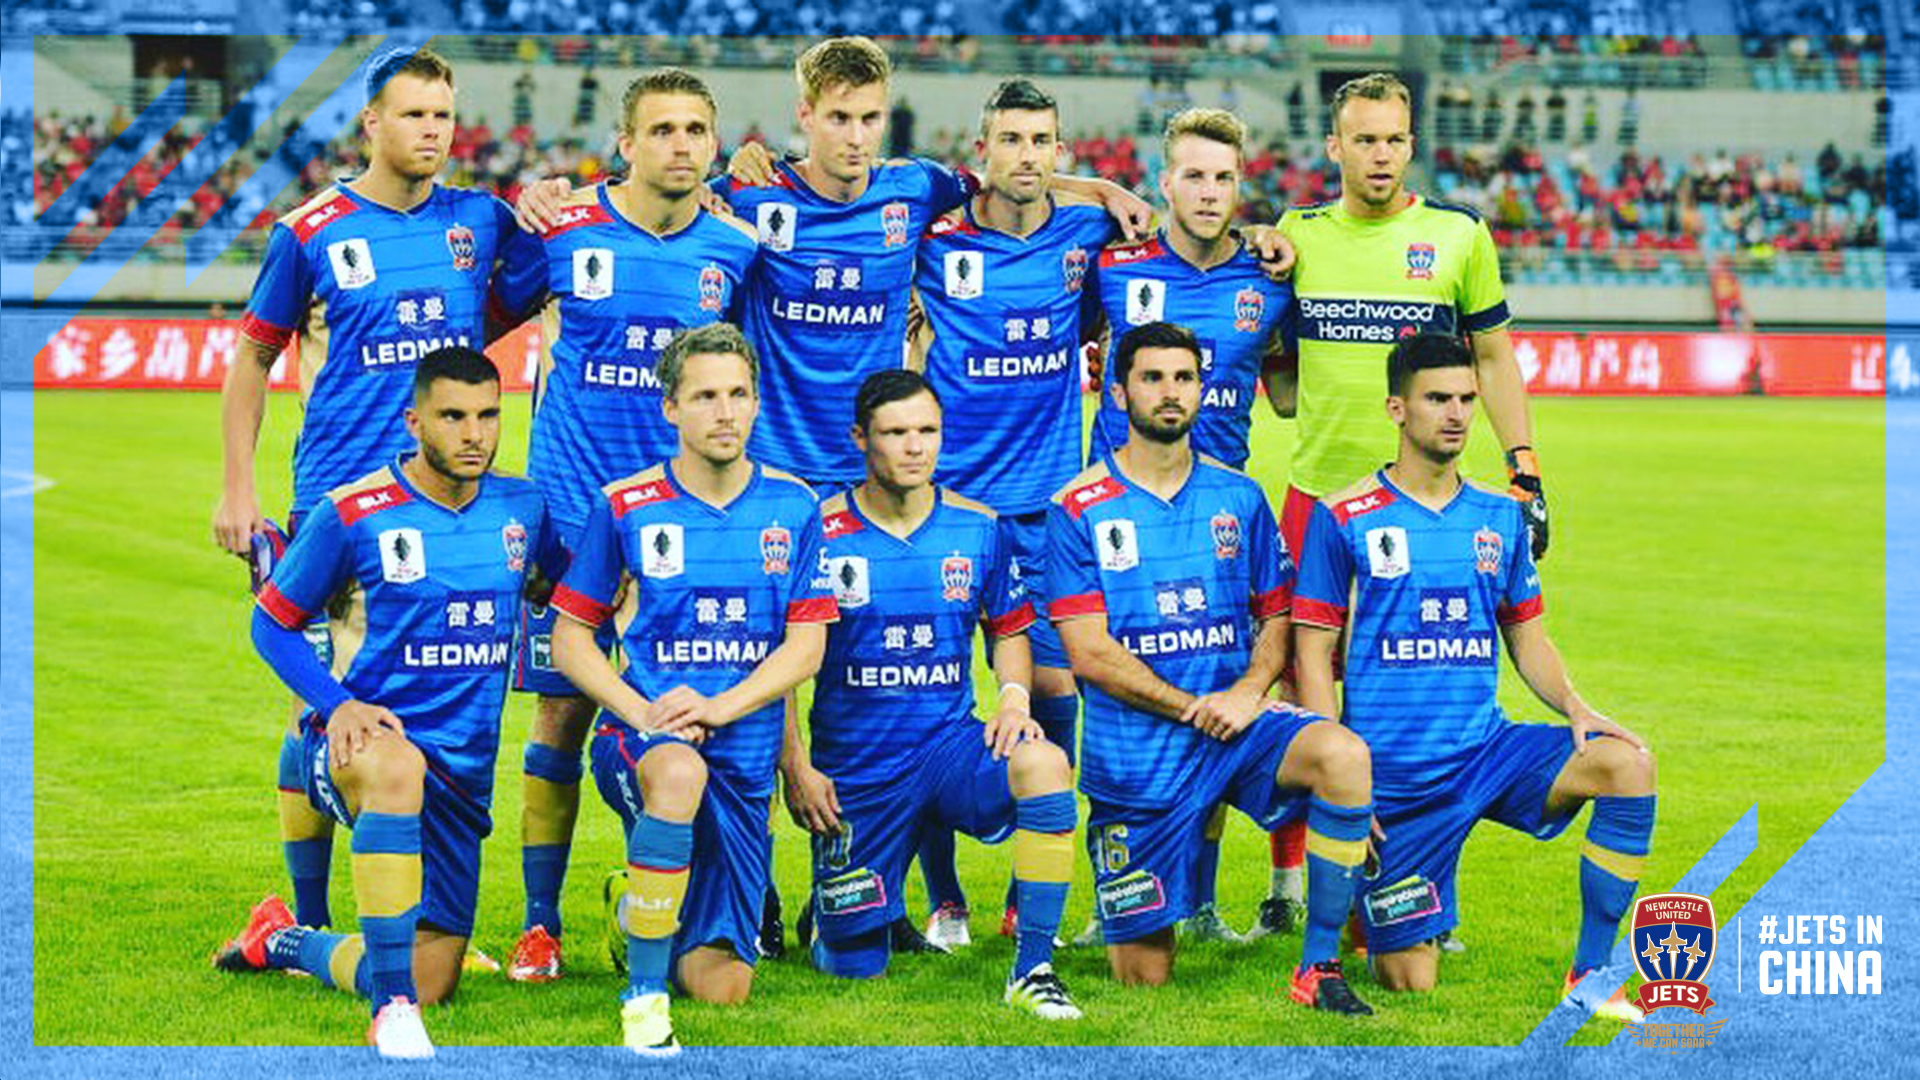 Newcastle Jets: REVIEW: It's Jets Whowin Against Liaoning